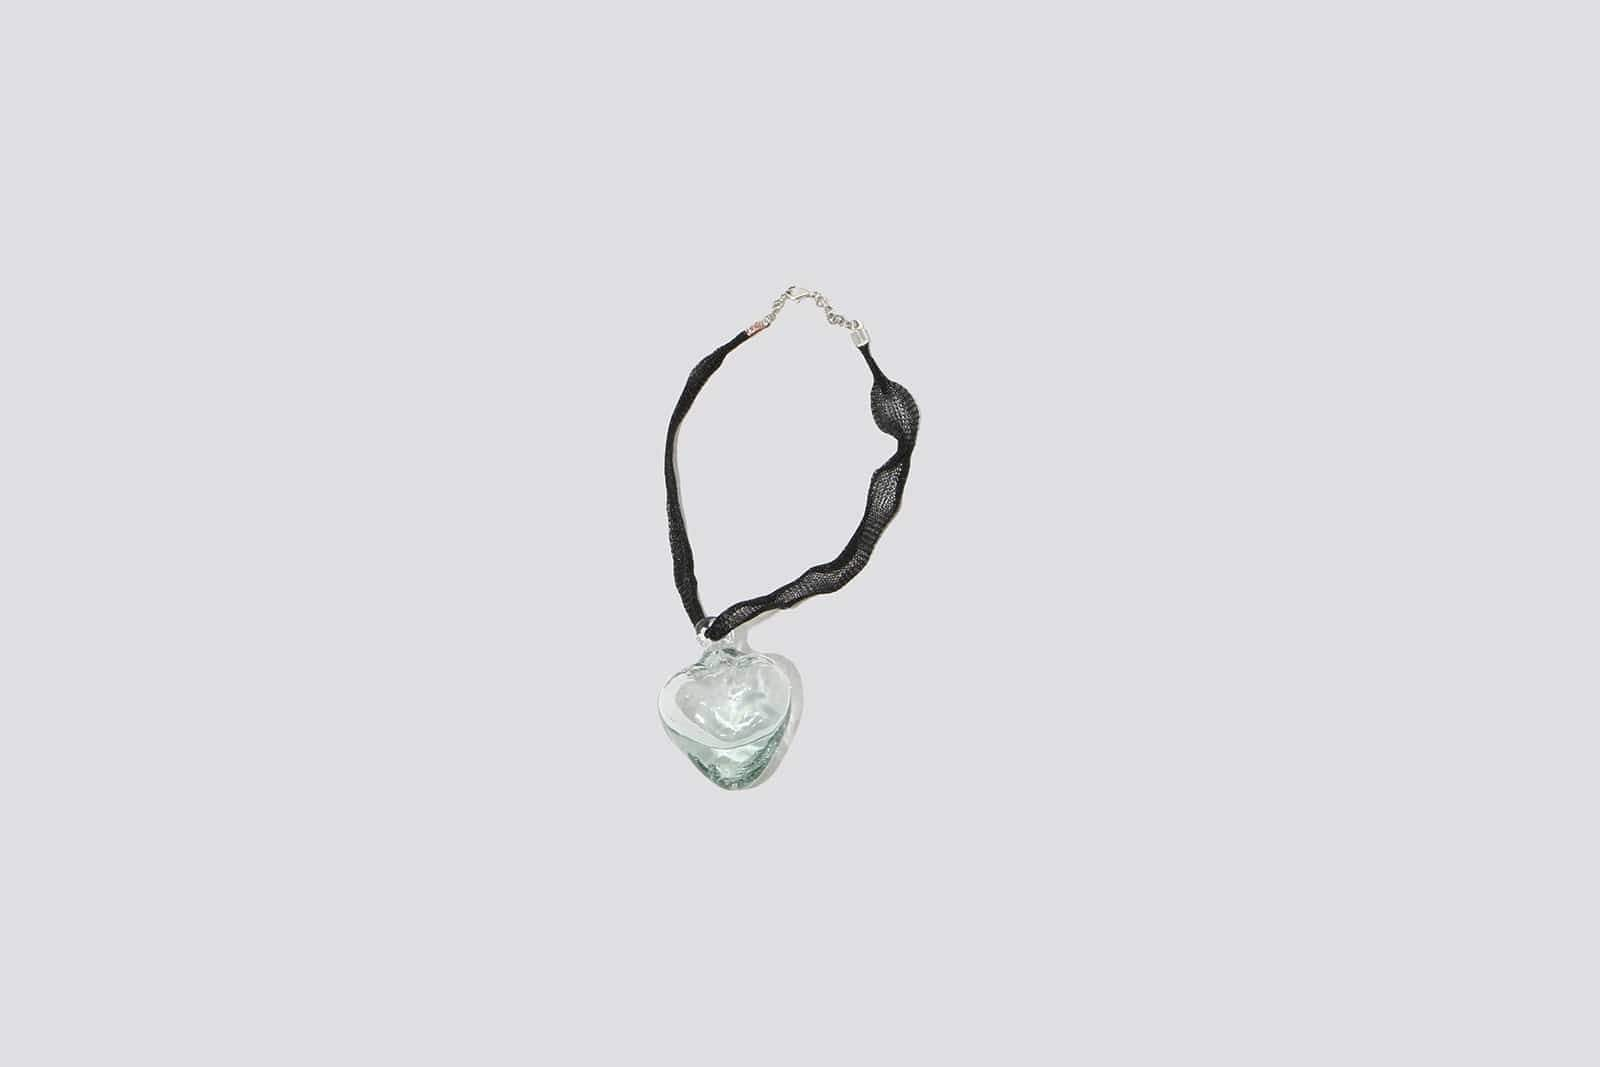 Glass Heart Necklace - MAIMOUN